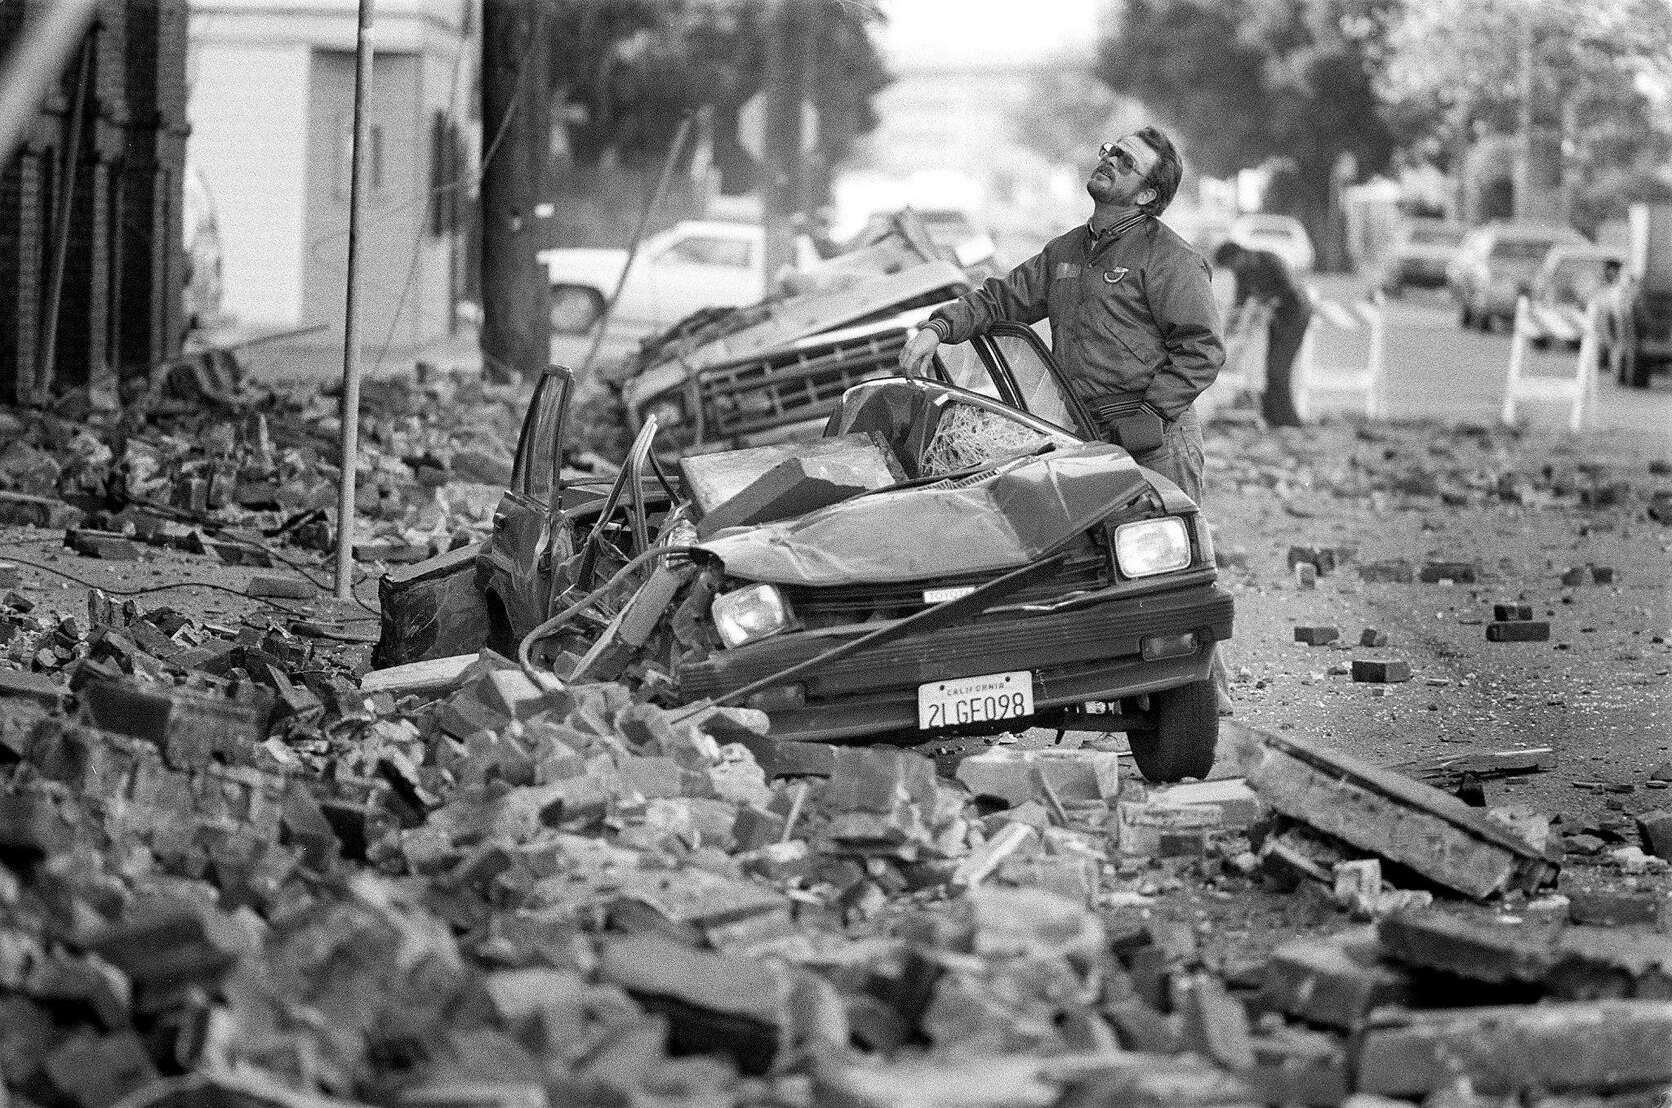 Loma Prieta quake: 'It can seem like yesterday'